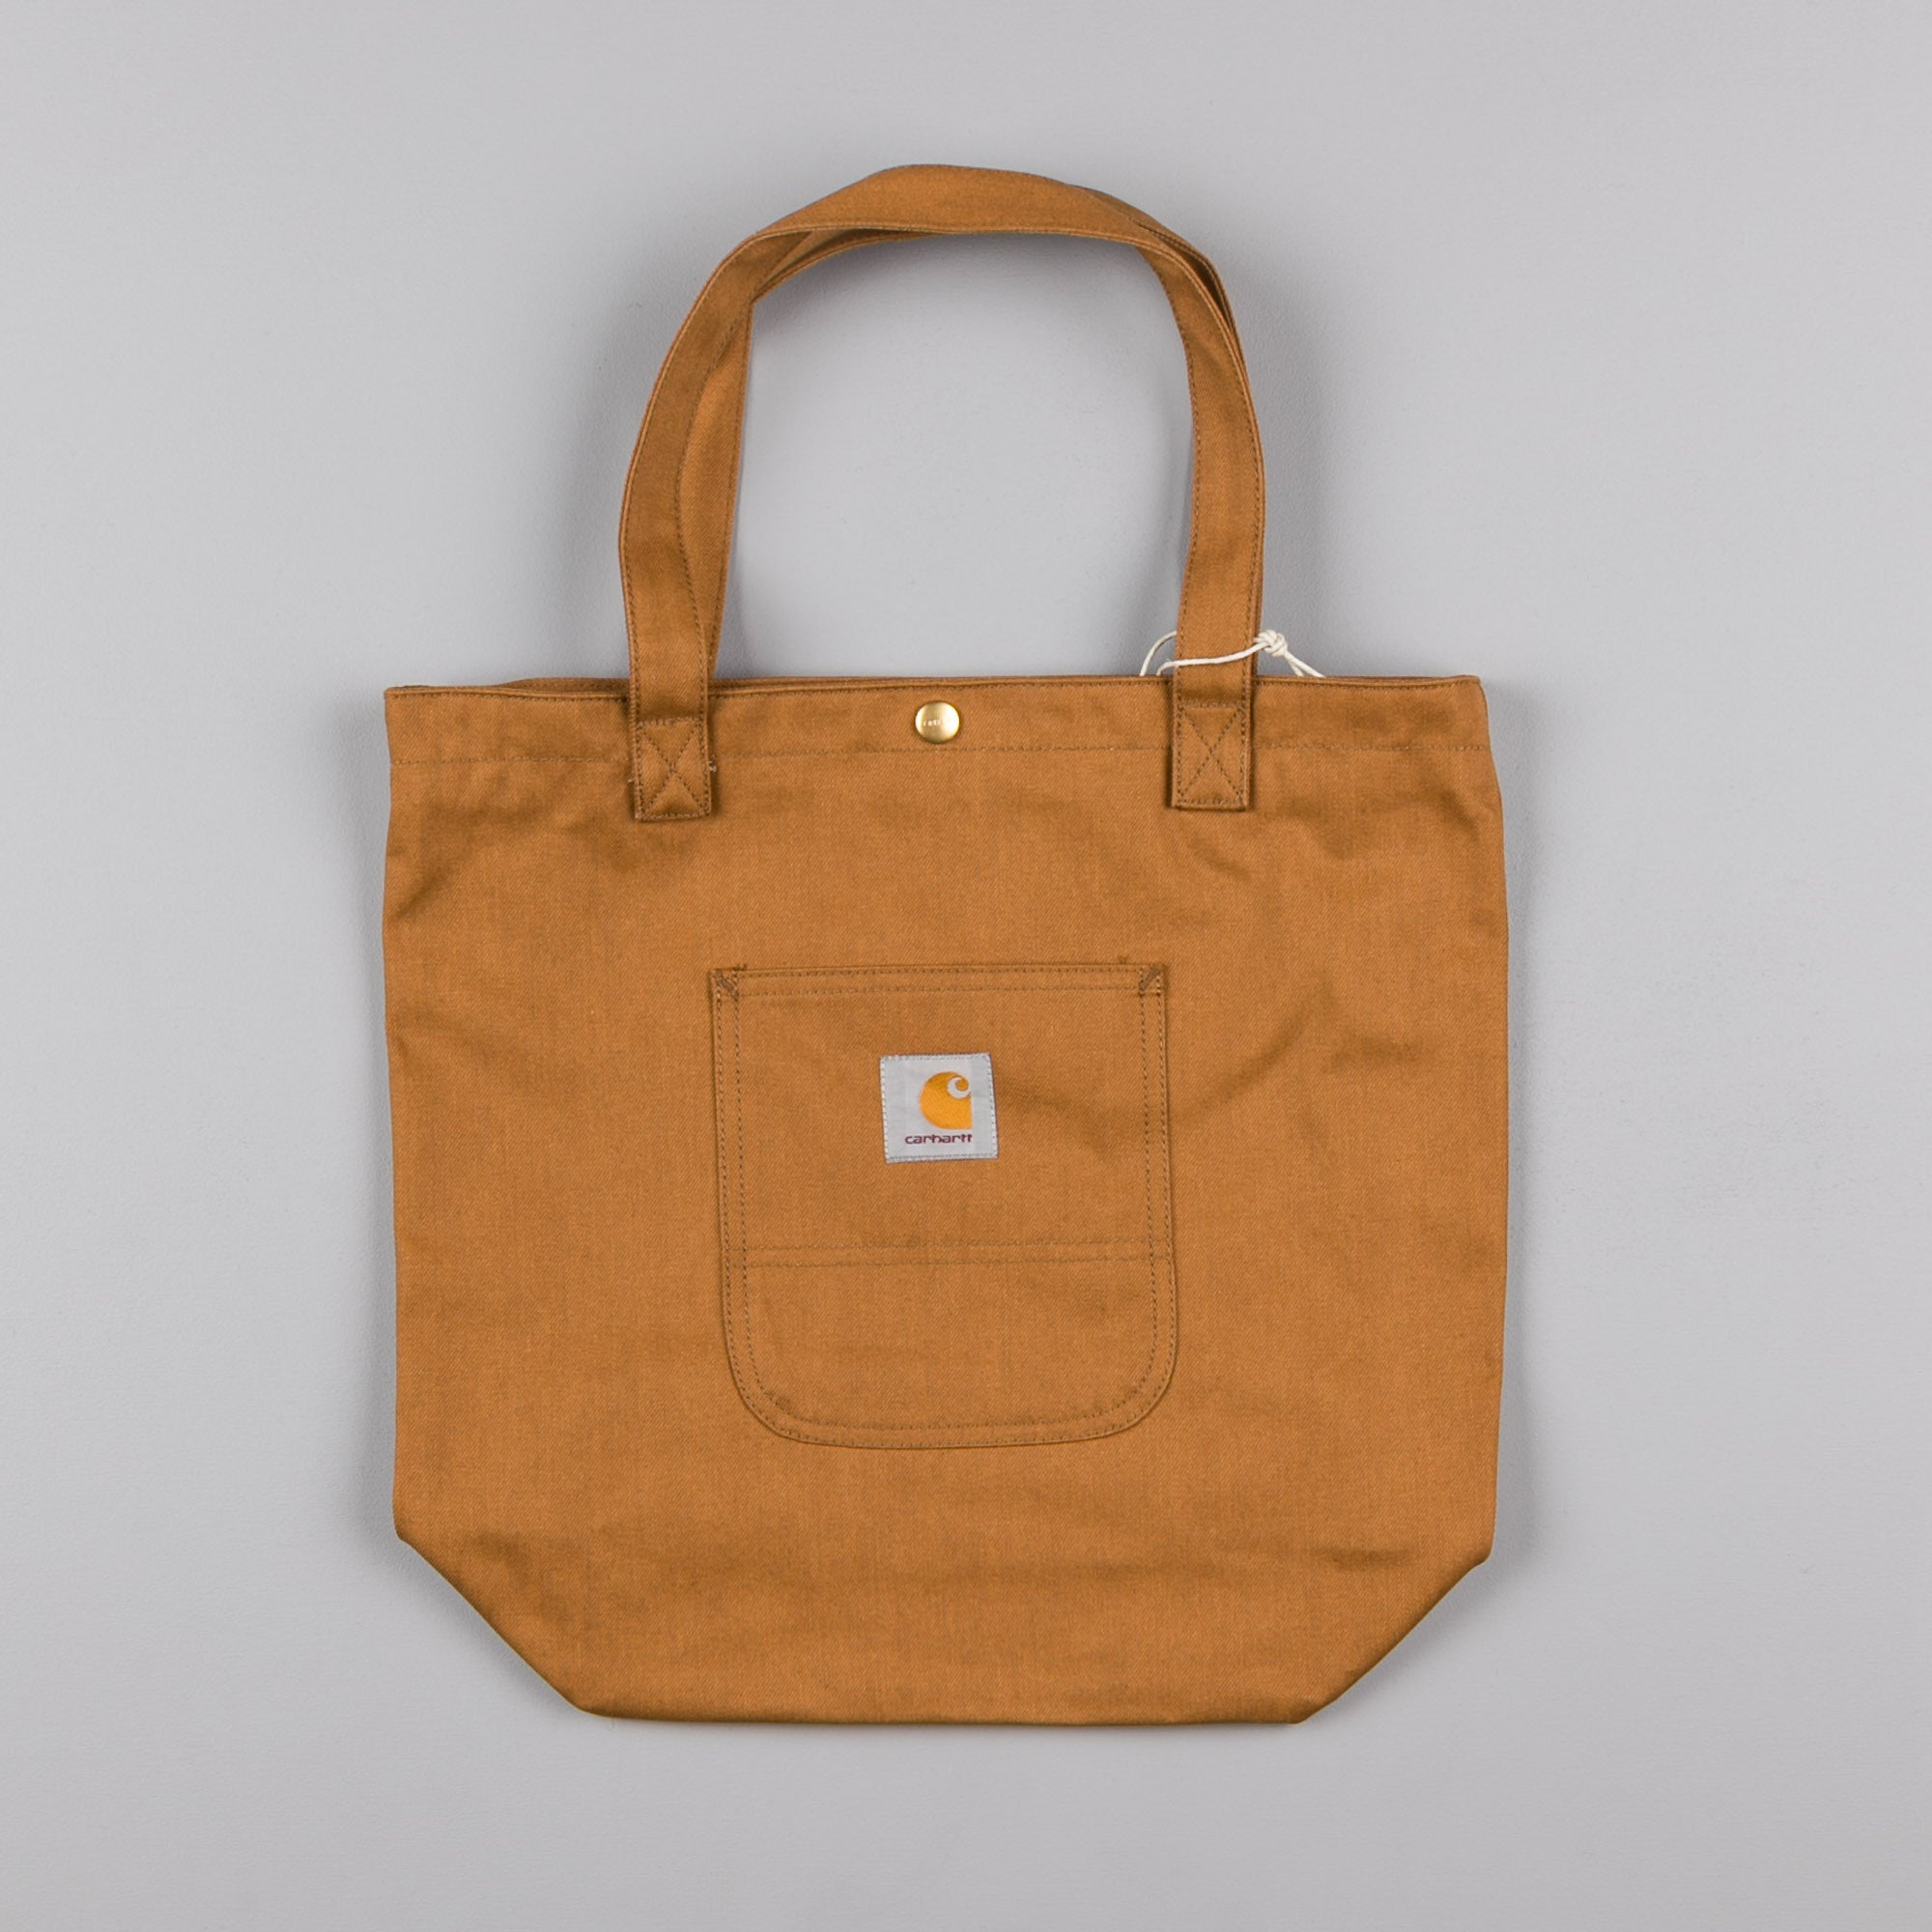 Carhartt Simple Tote Bag - Brown